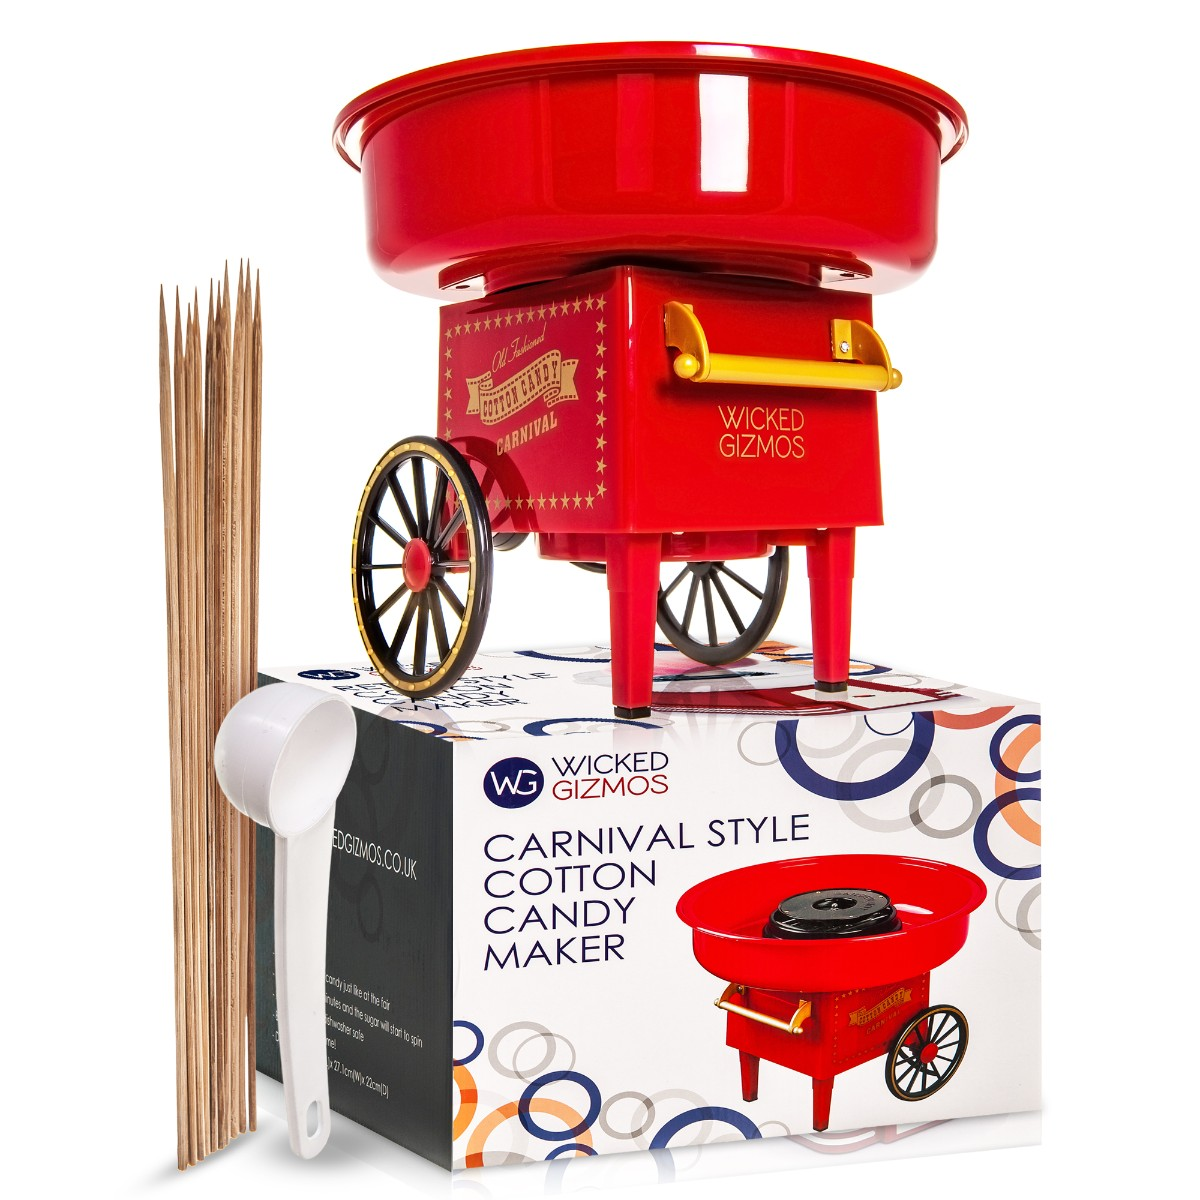 Cotton Sugar Candy Floss Maker Machine Red Electric Portable Home Party Wedding